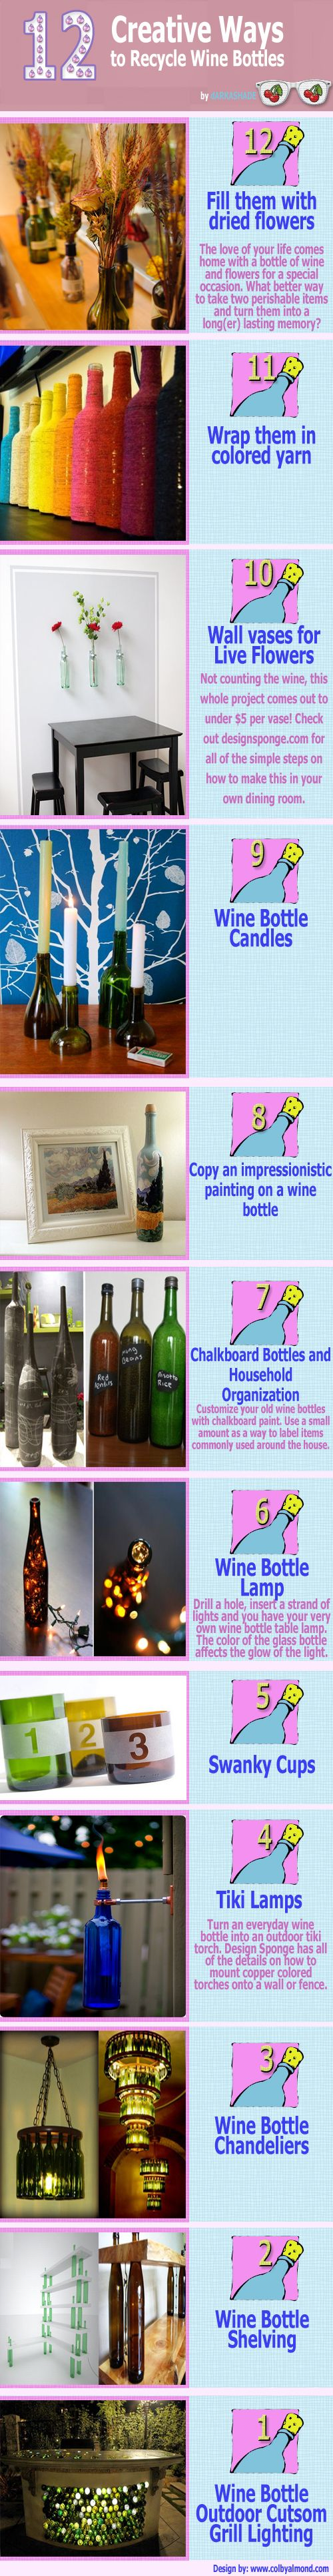 Ways to recycle wine bottles